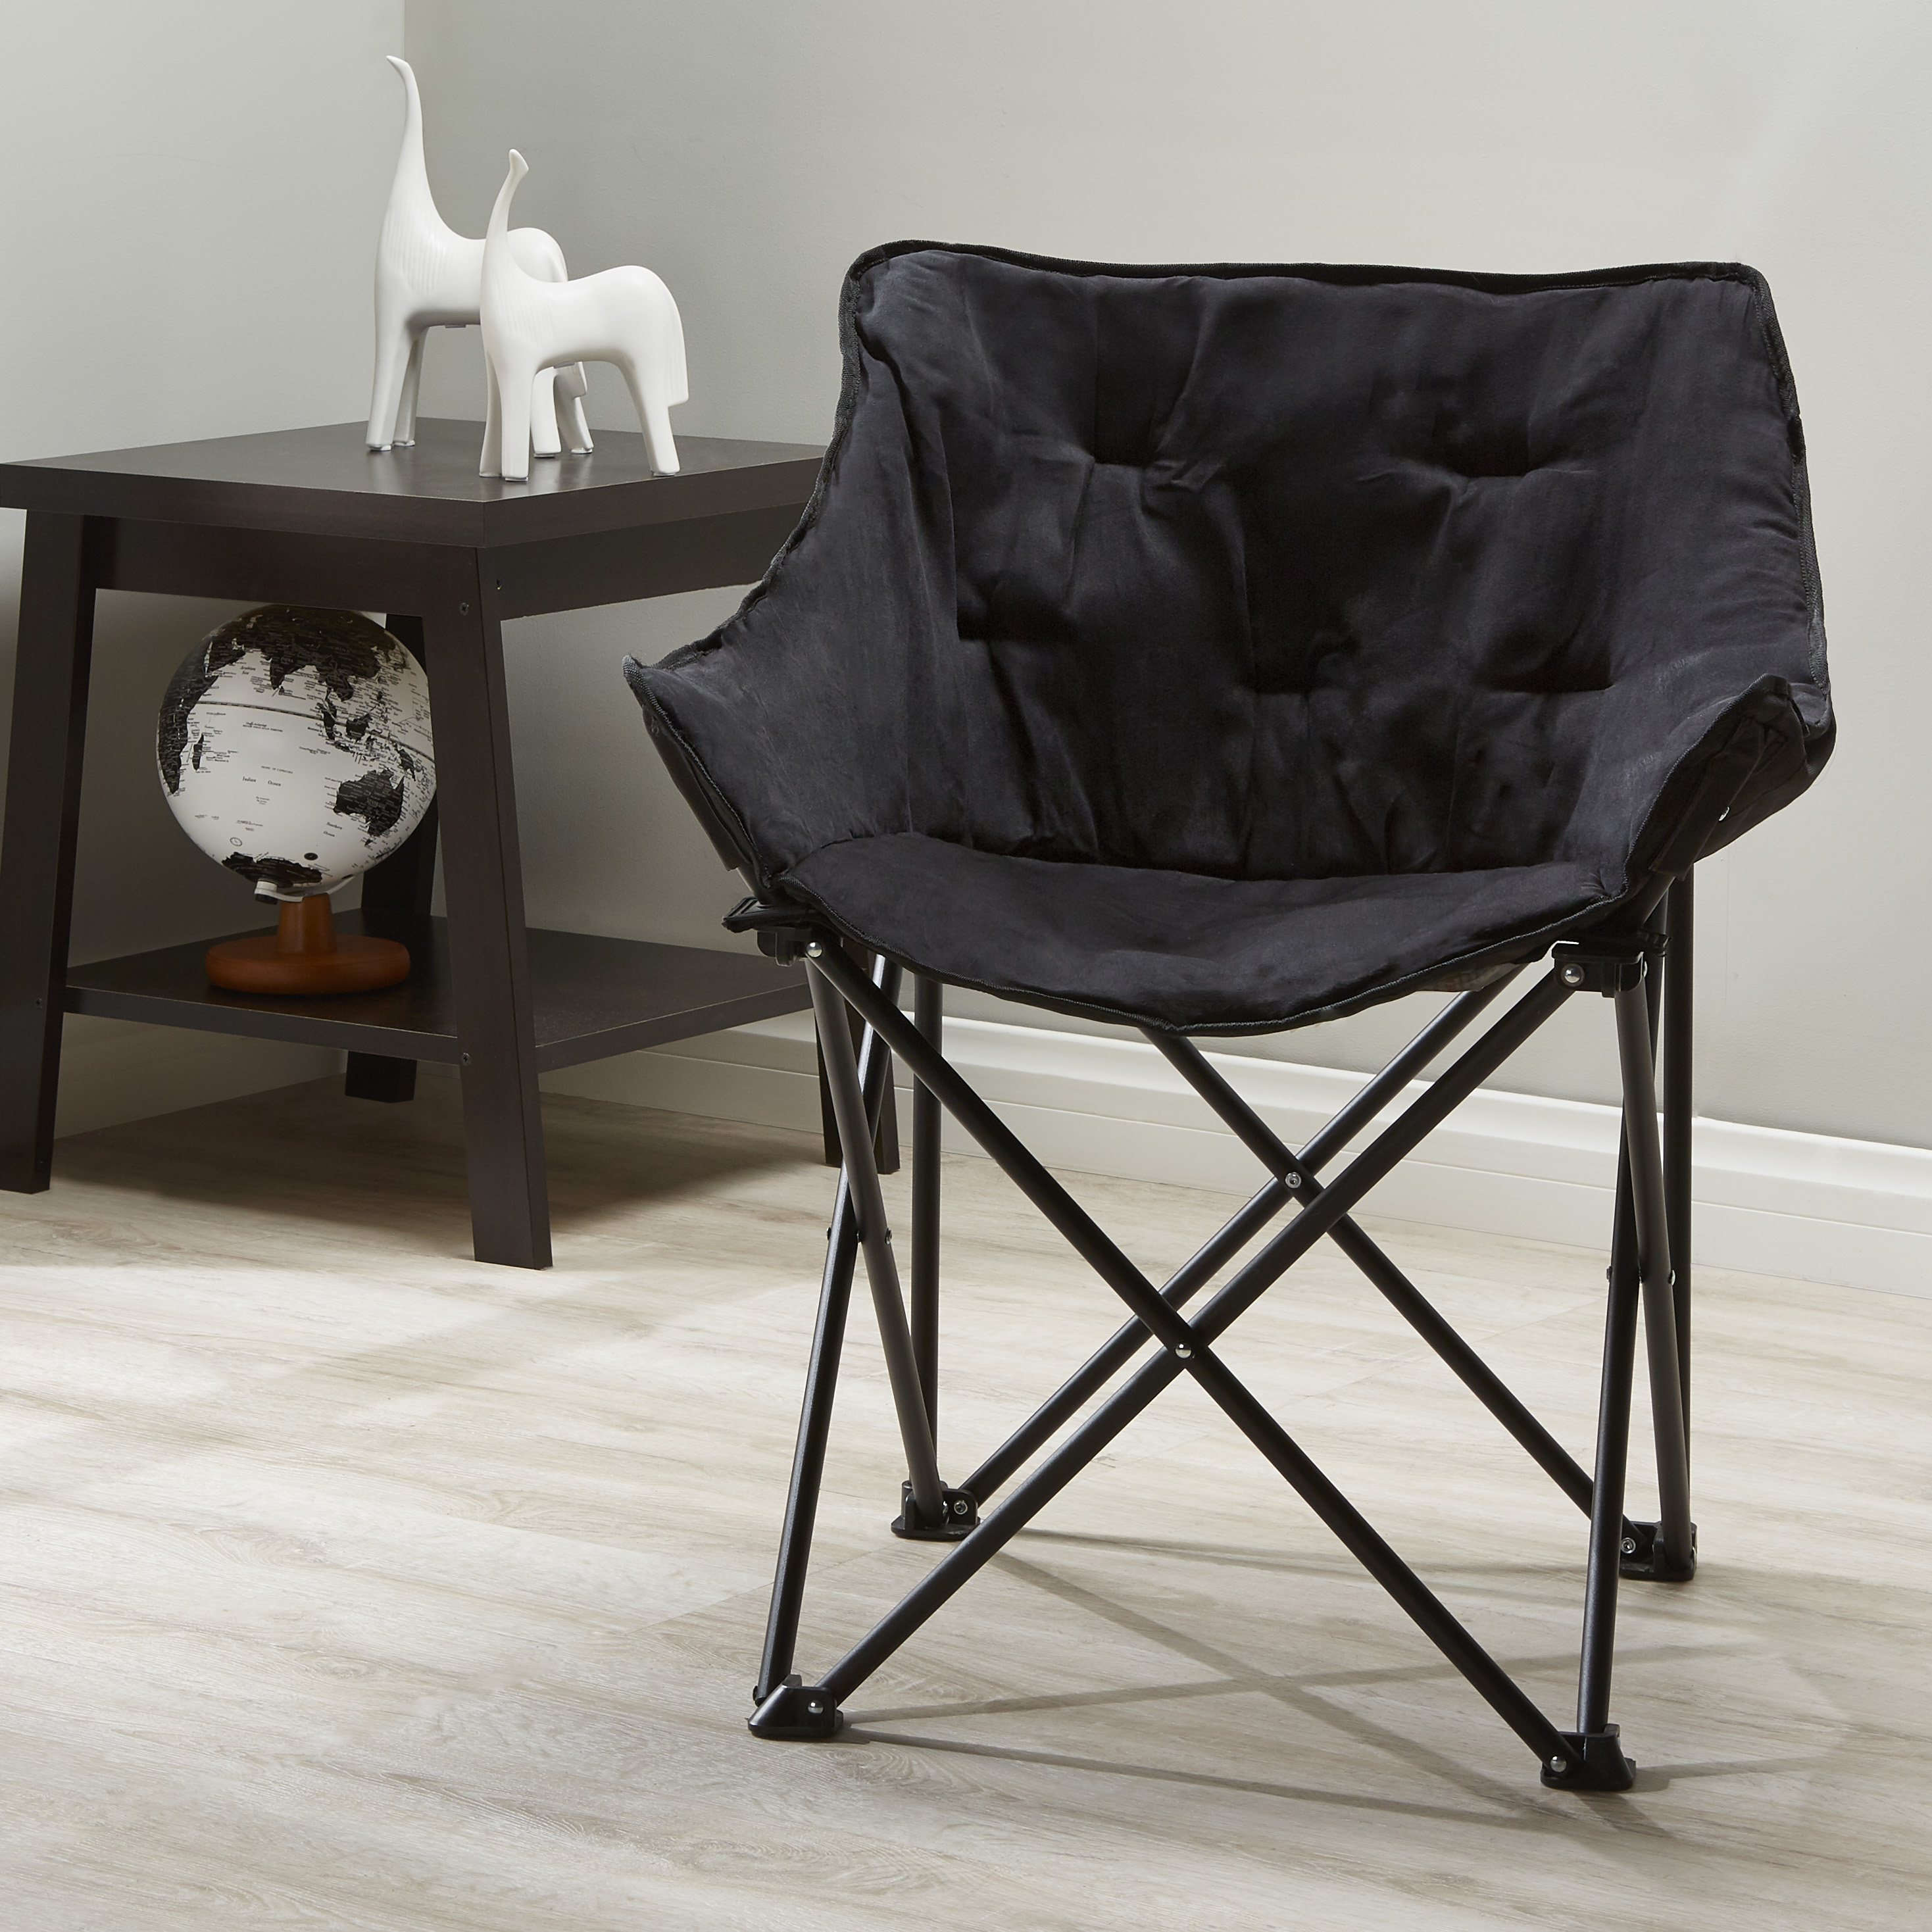 Product Image Mainstays Collapsible Square Chair, Black Microsuede